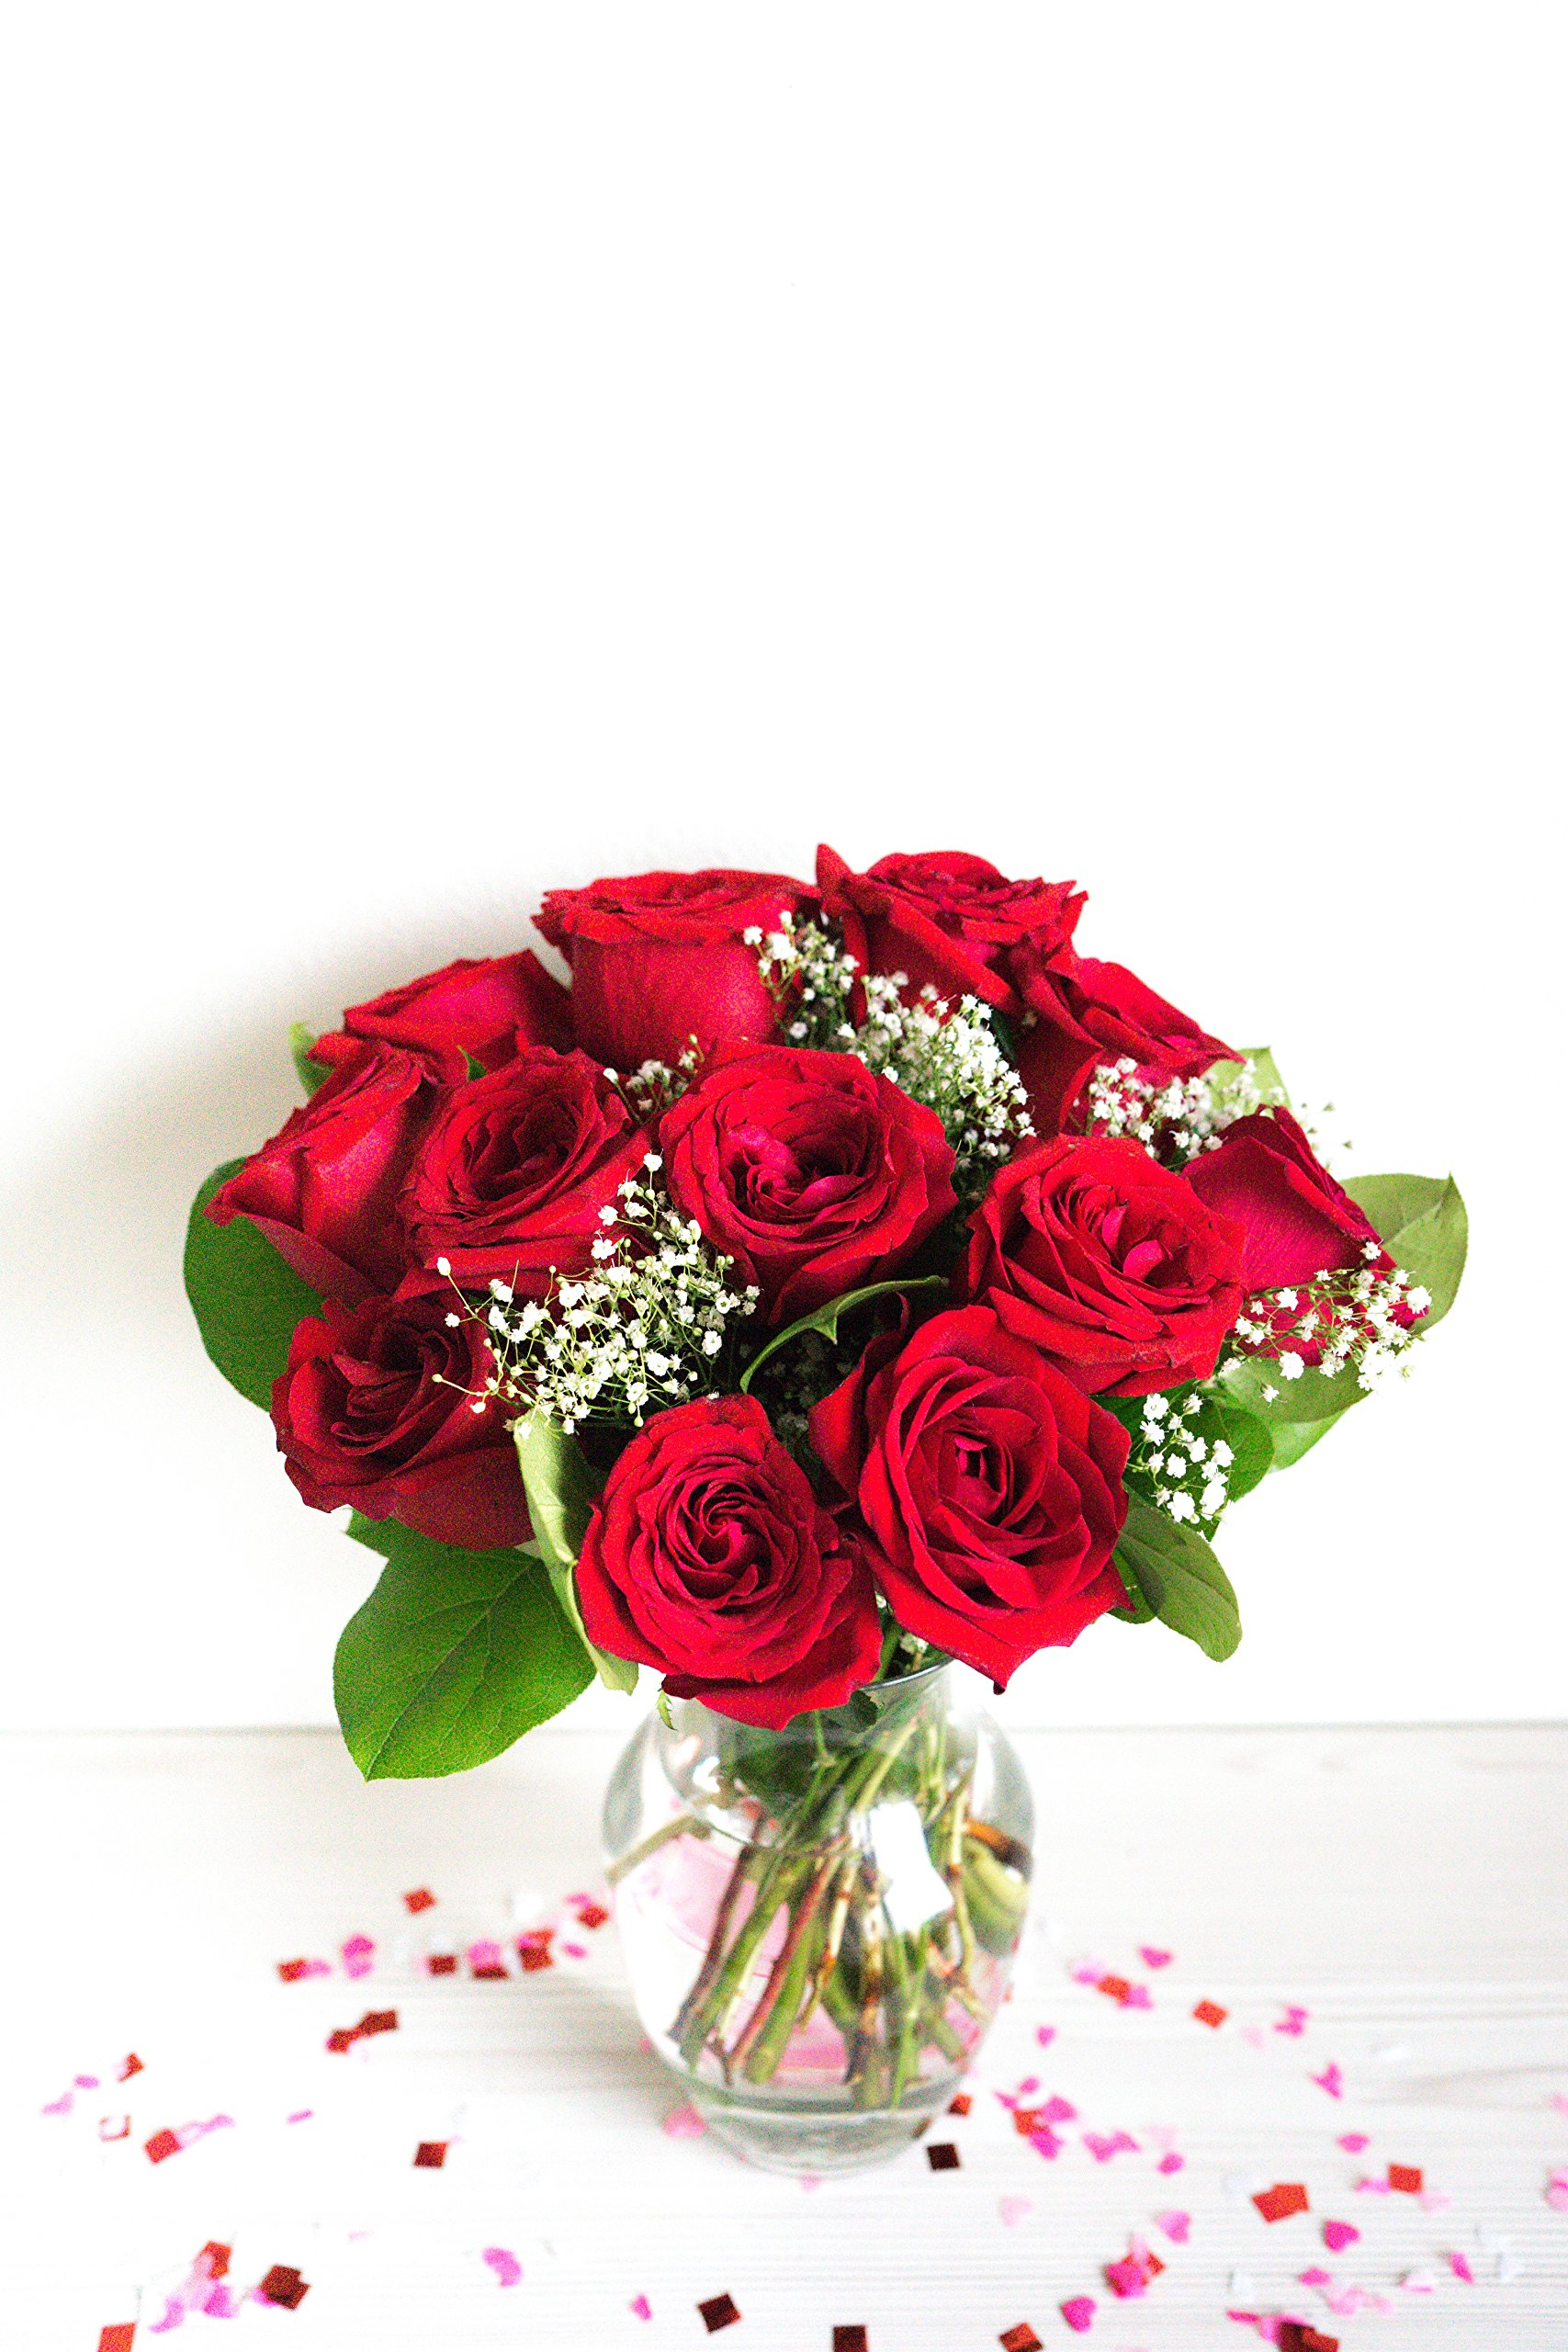 Flowers - One Dozen Long Stemmed Red Roses (Free Vase Included) by From You Flowers (Image #4)